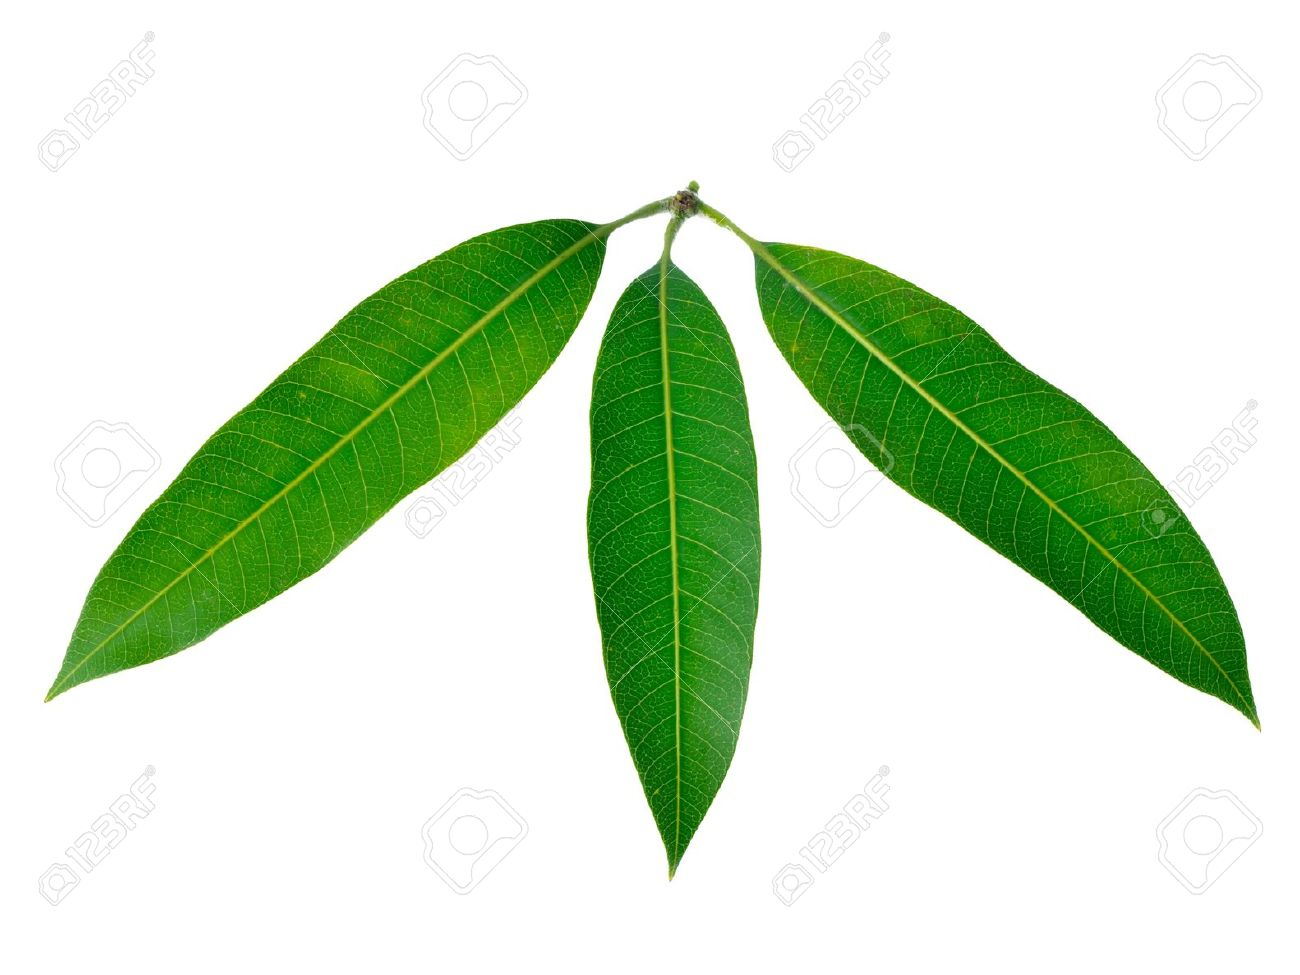 Image result for images of mango leaves